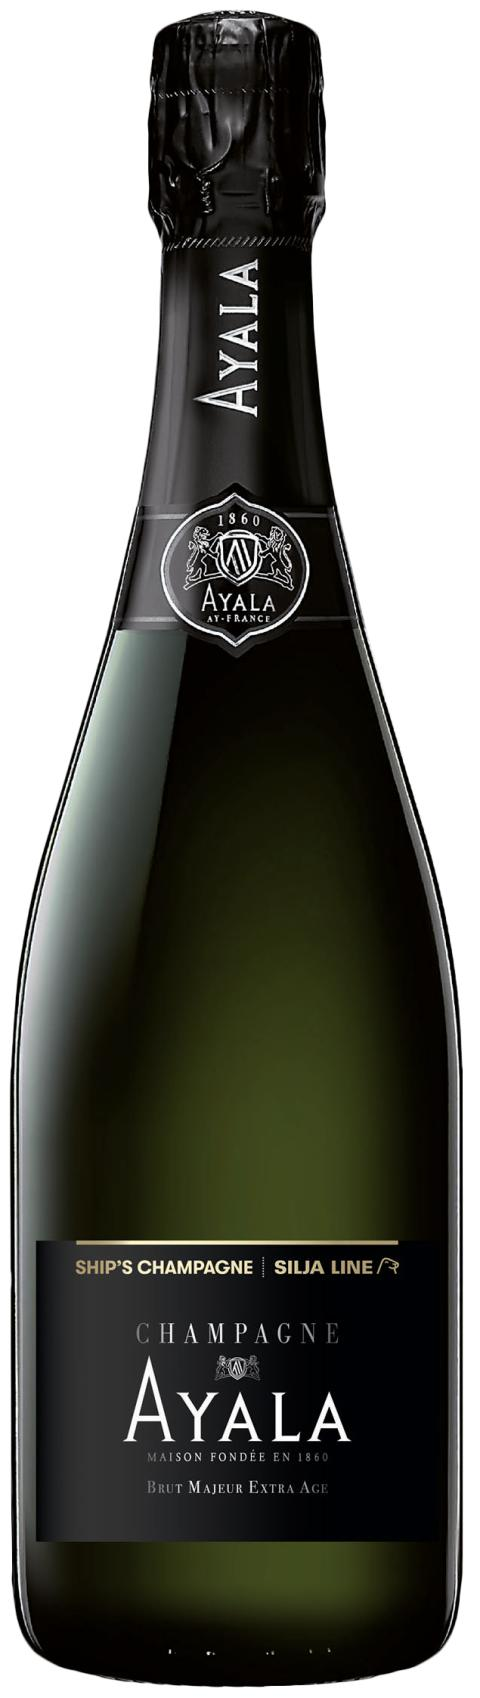 Champagne Ayala Brut Majeur Extra Age